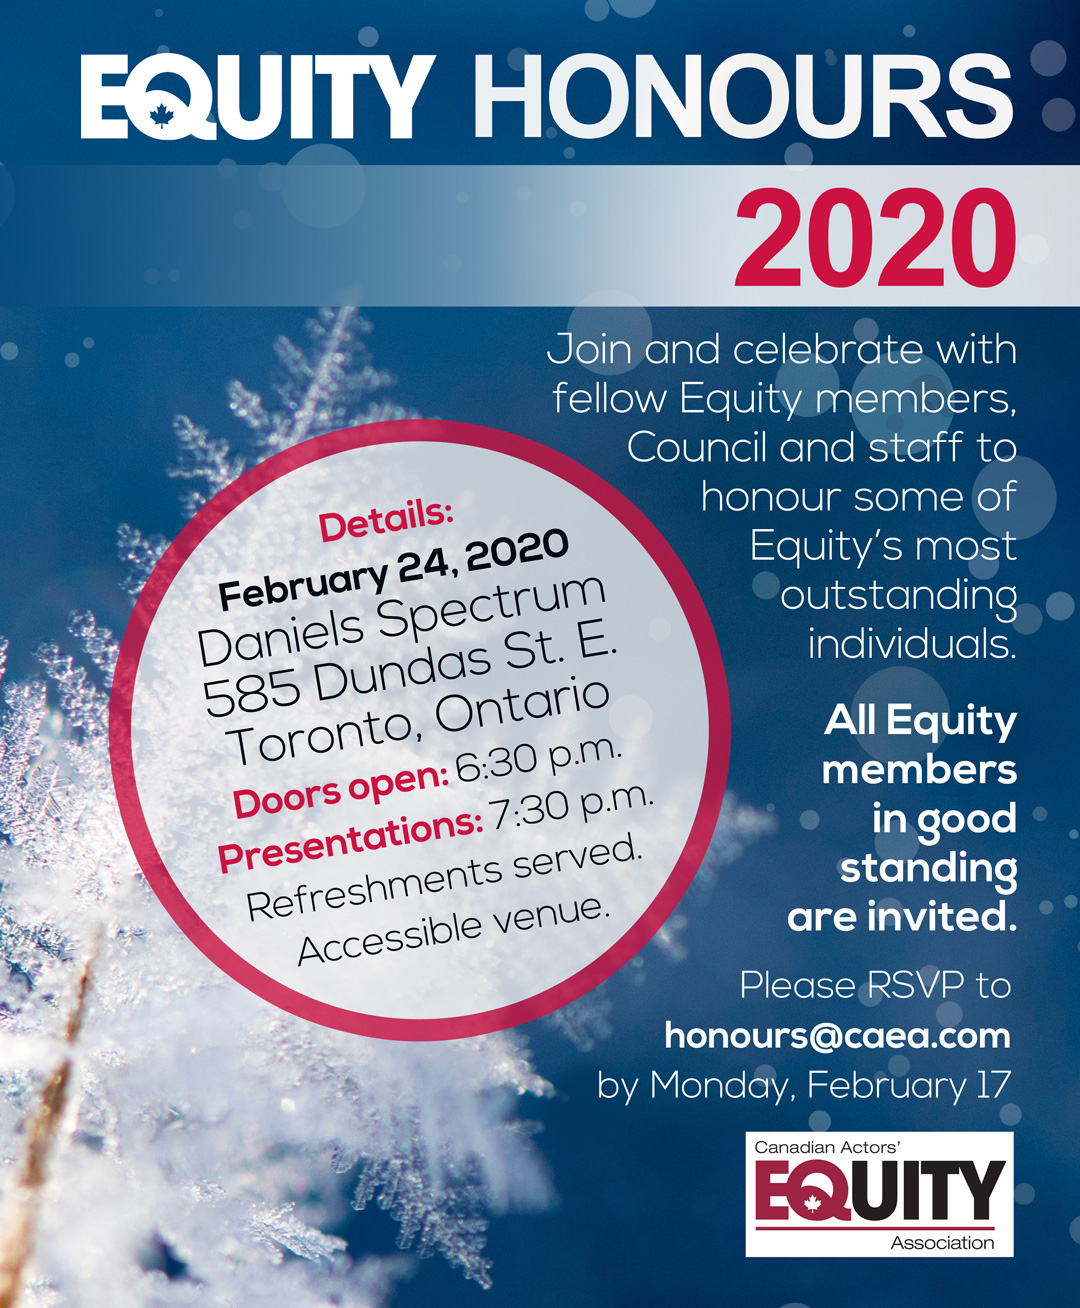 Equity Honours 2020 Invitation